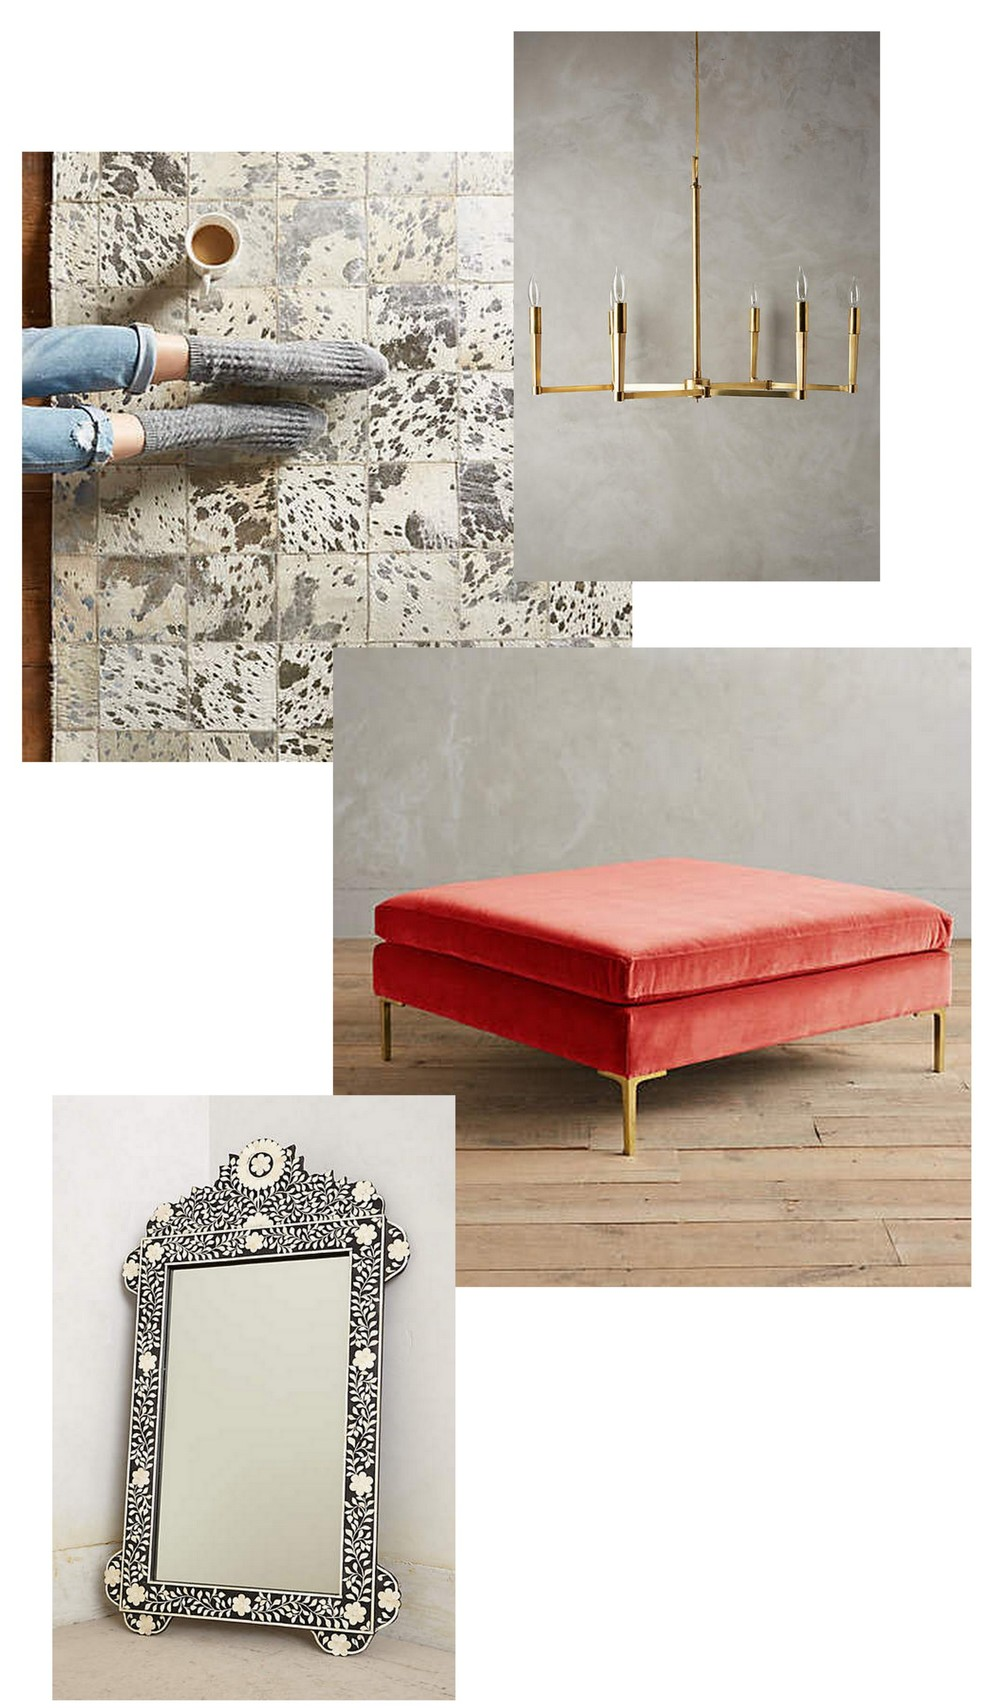 images via anthropologie.com